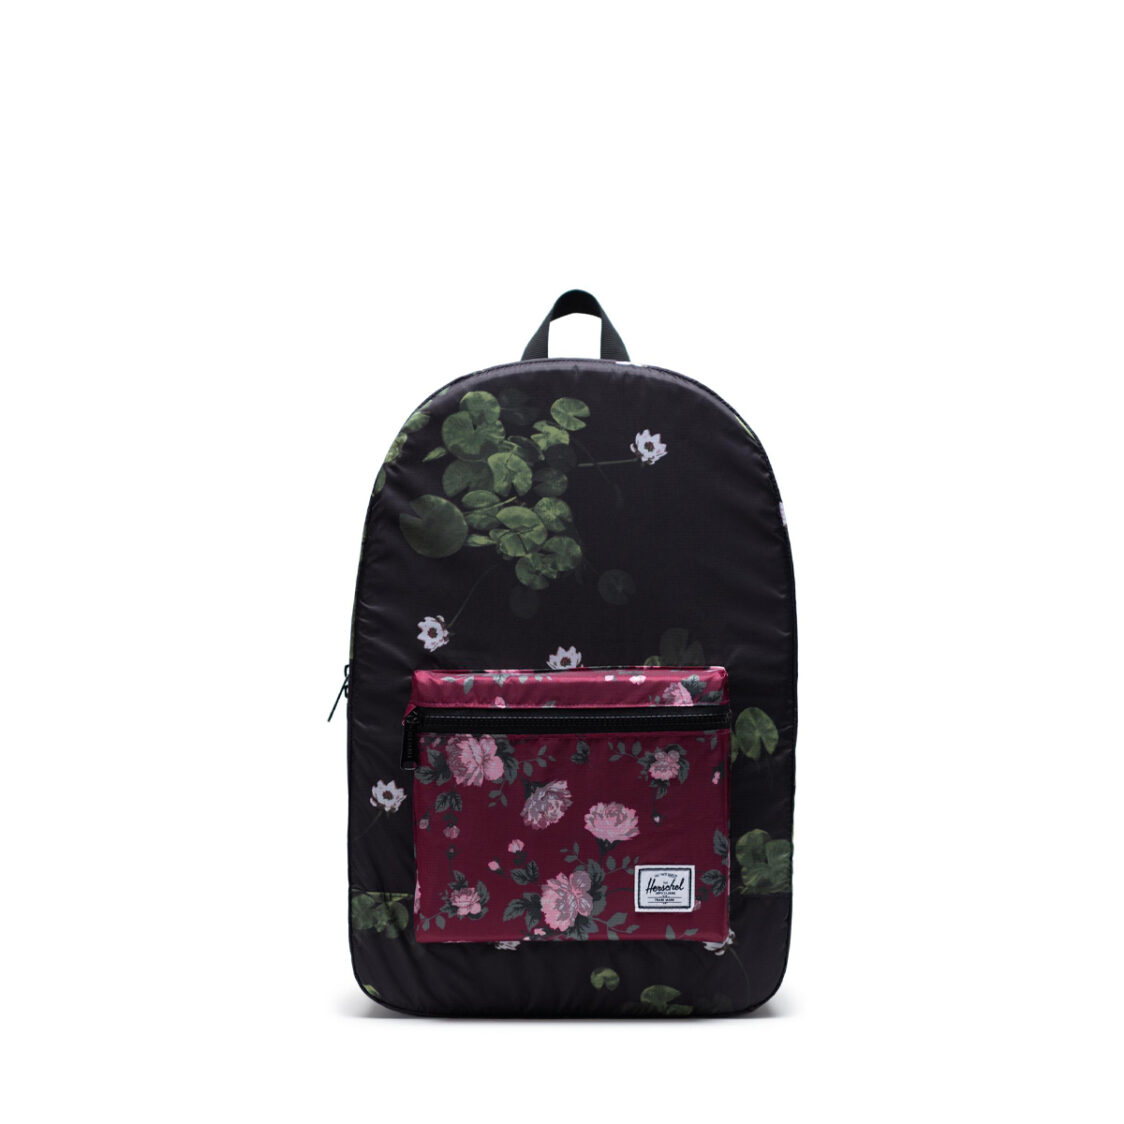 Herschel Packable Daypack Fine China Floral 10614-04083-OS